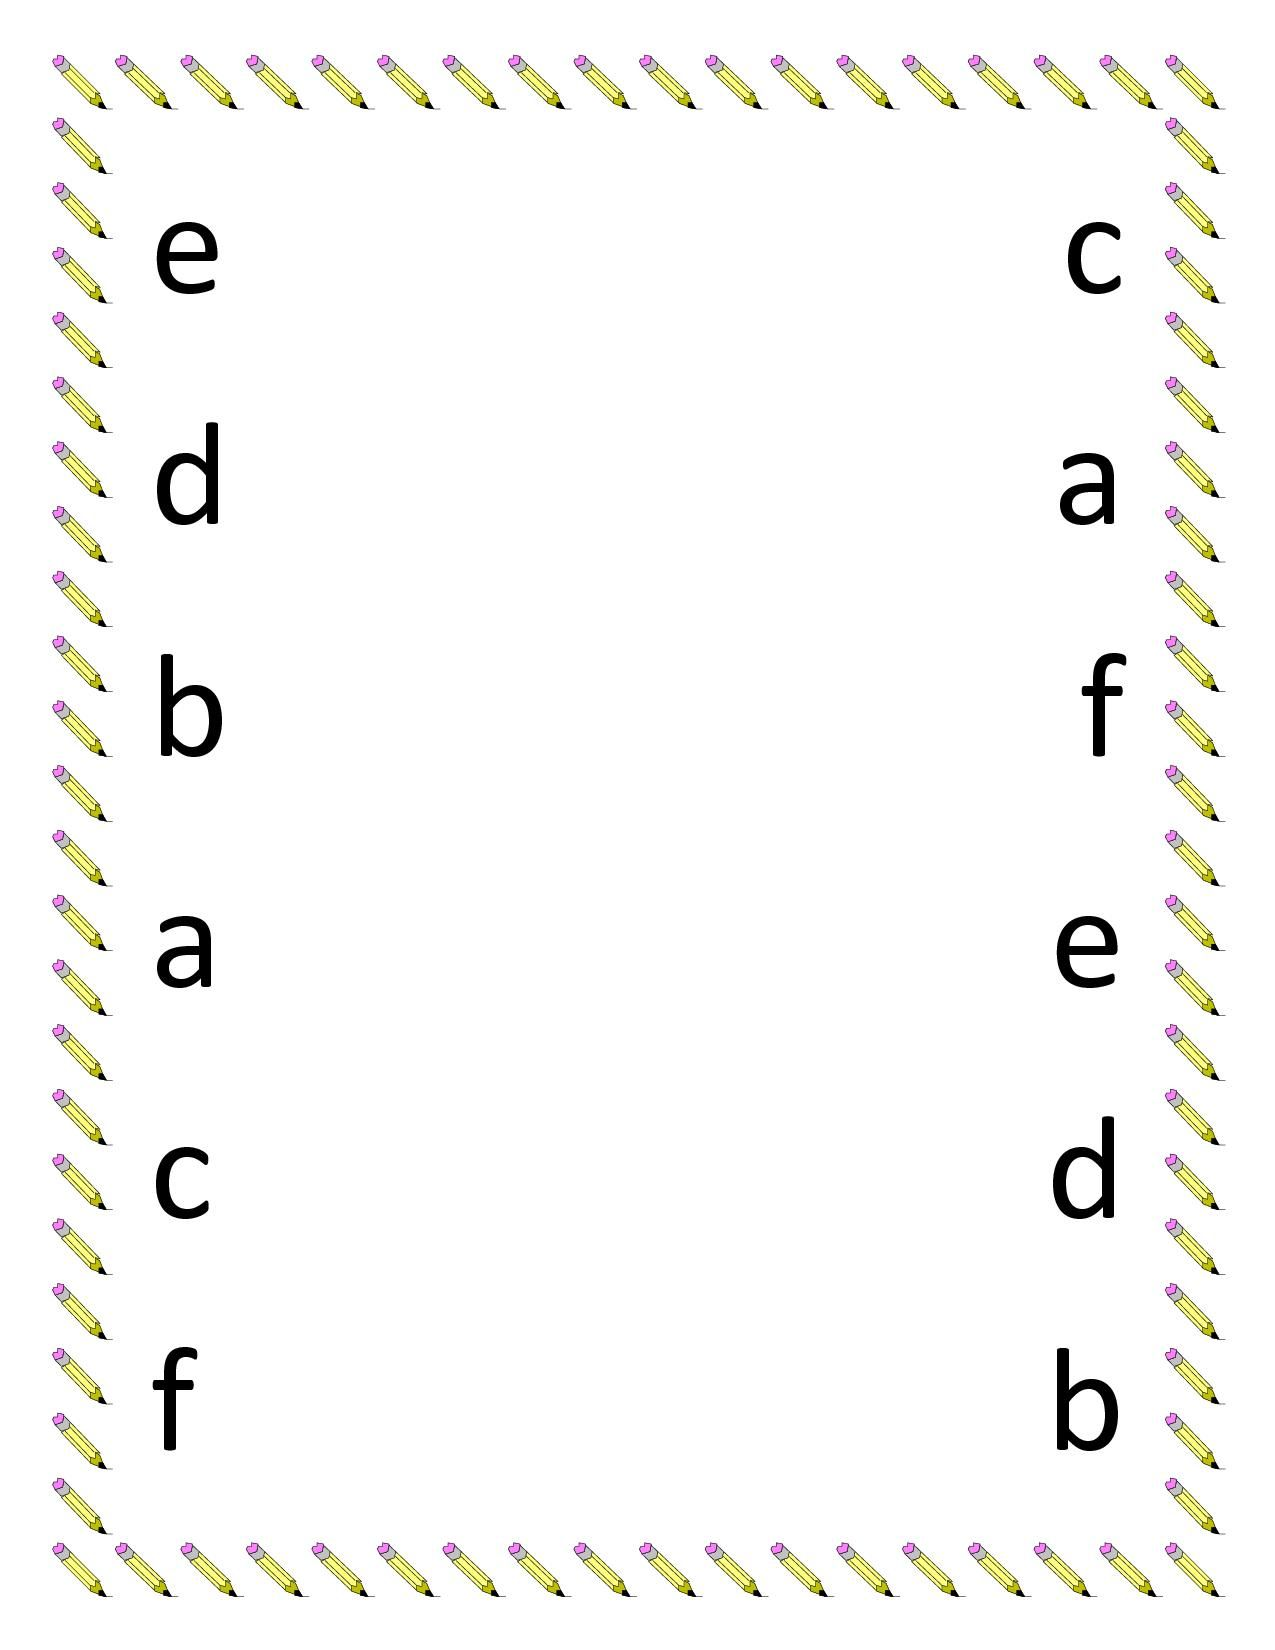 Awesome Lowercase Abc Practice Sheets That You Must Know